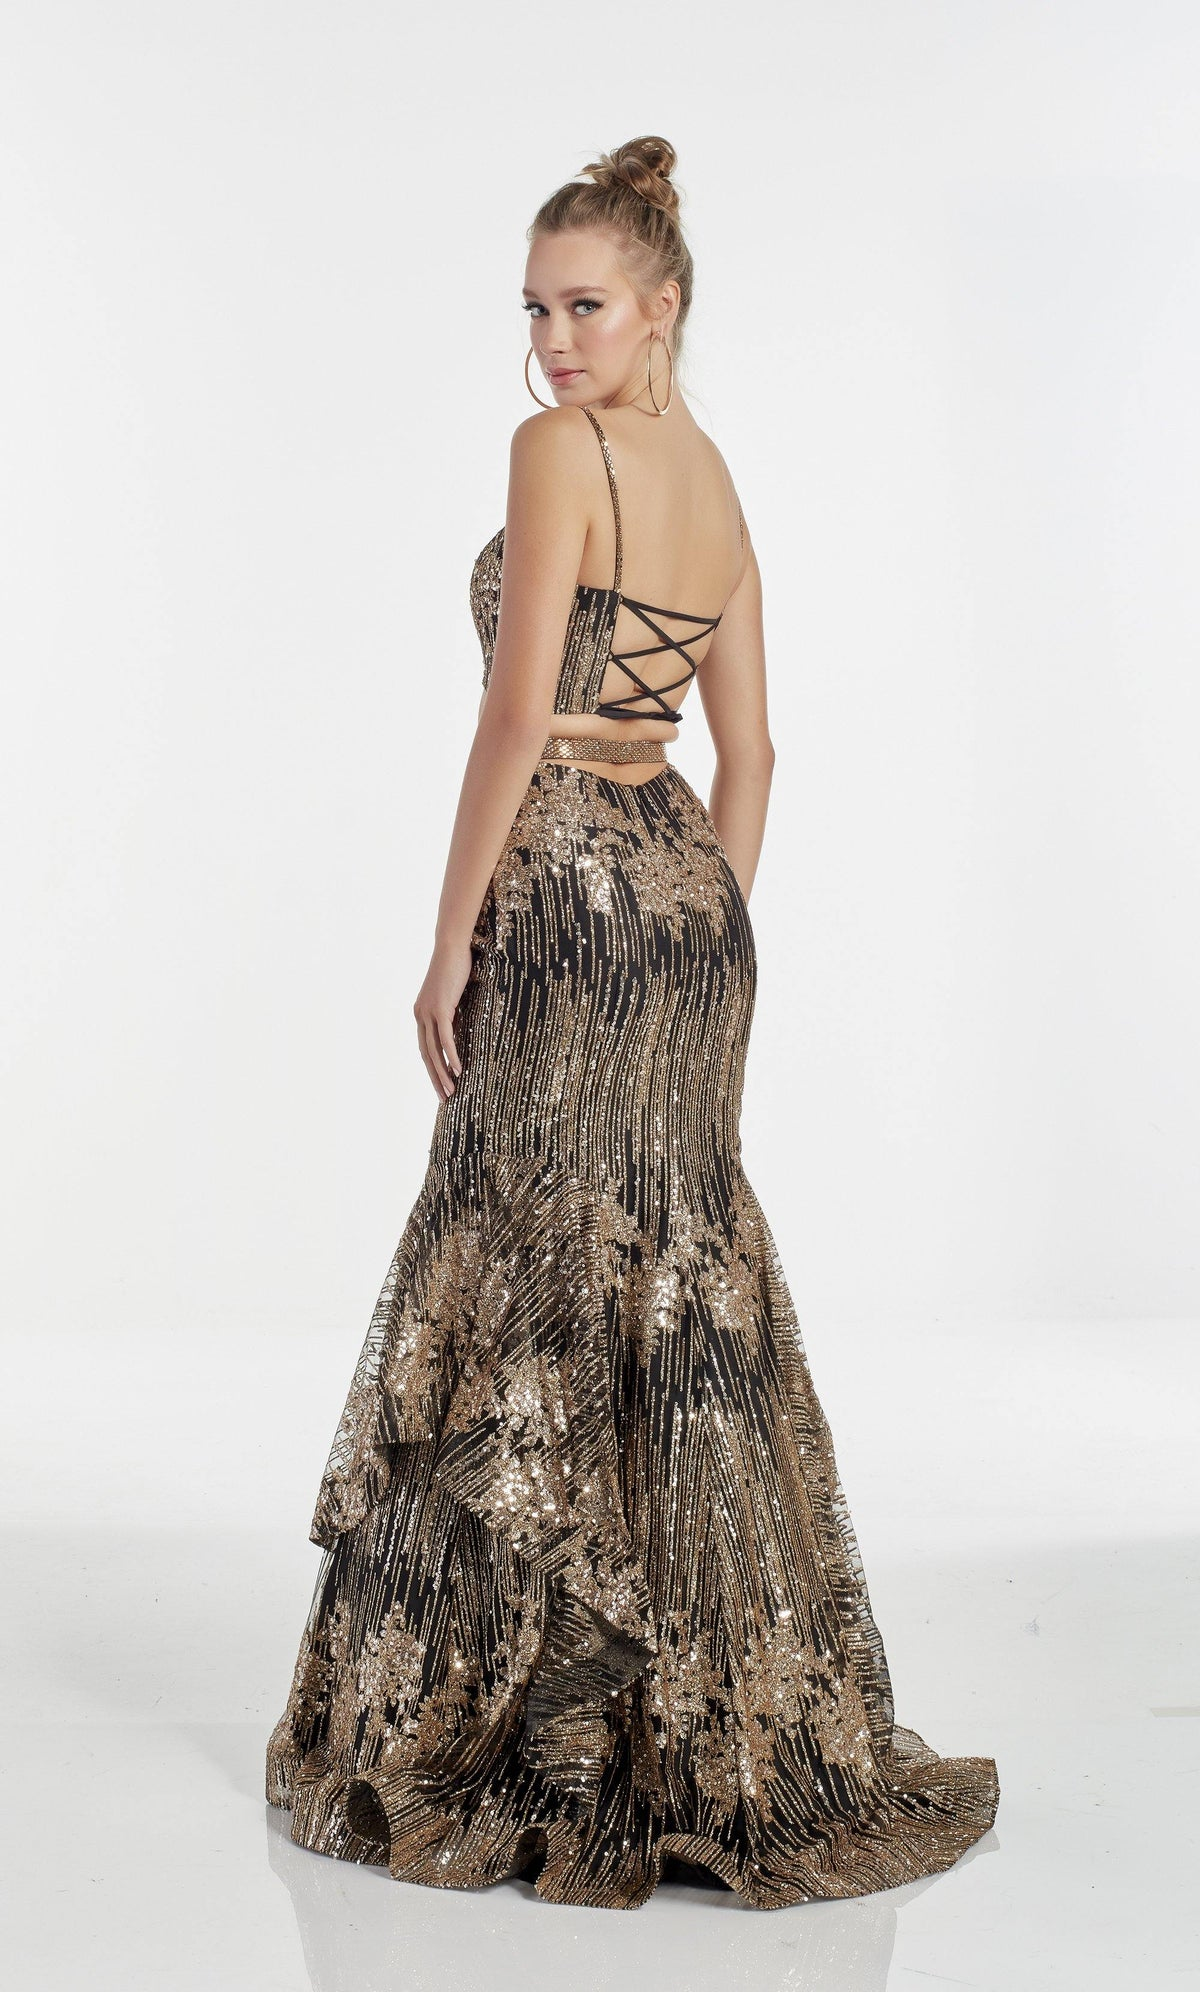 Black-Gold fully sequin embellished two piece mermaid prom dress with a strappy back and layered skirt